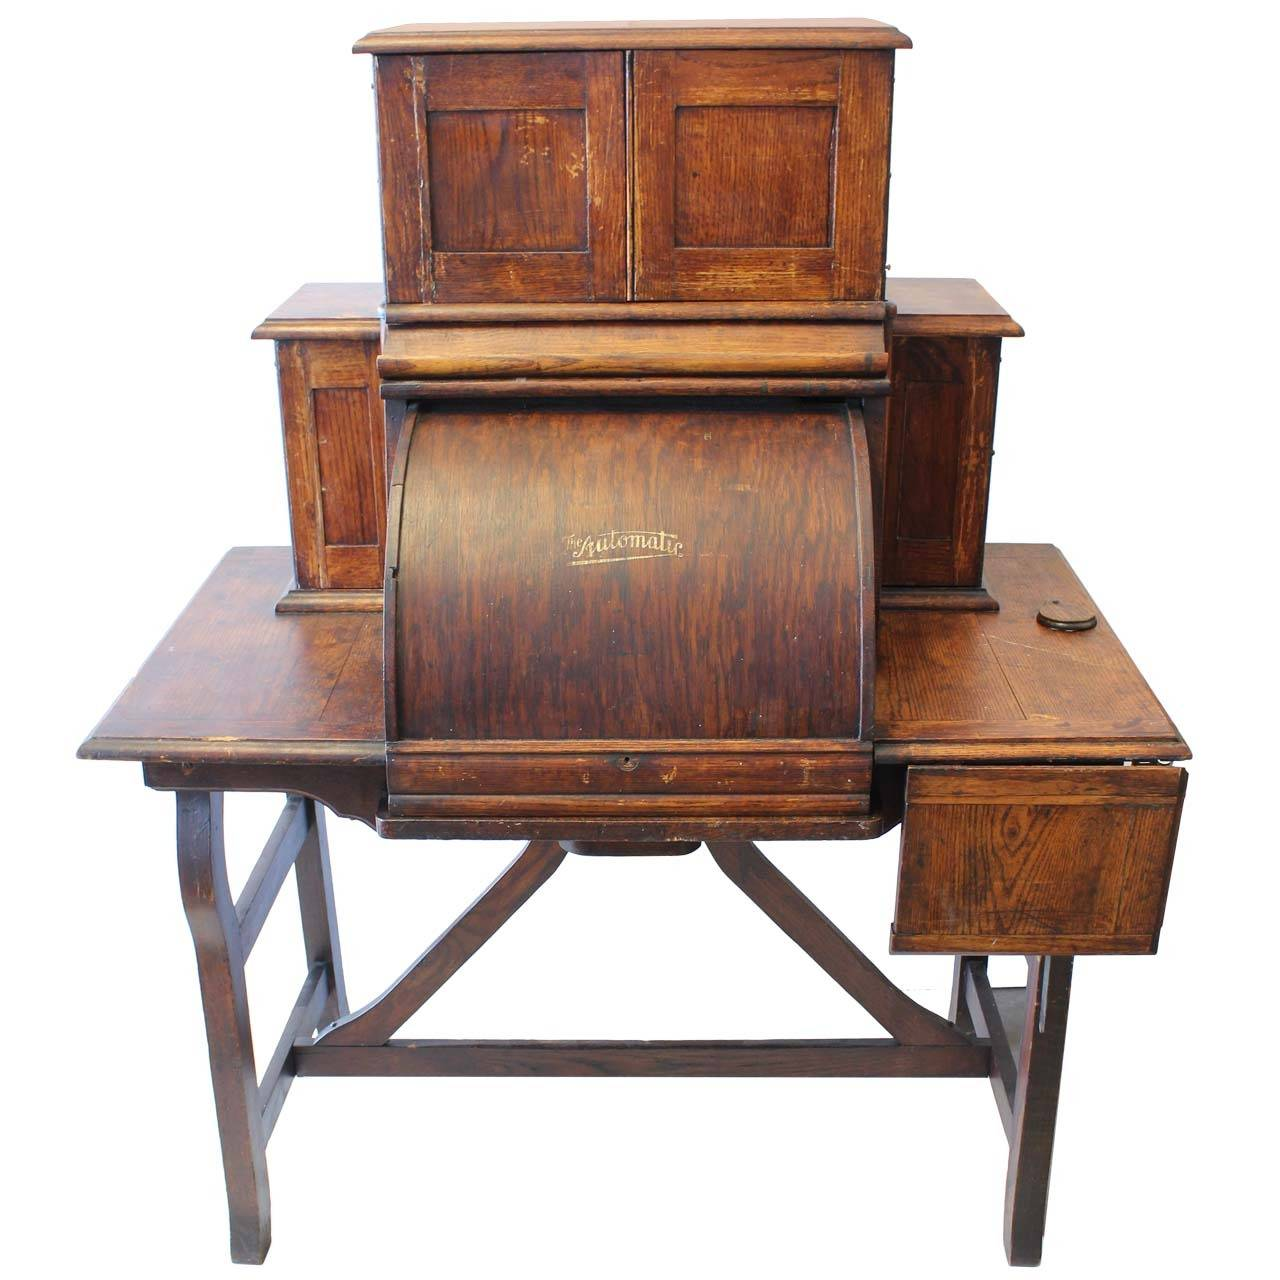 Rare Antique American Industrial Mechanical Desk For Sale - Rare Antique American Industrial Mechanical Desk For Sale At 1stdibs